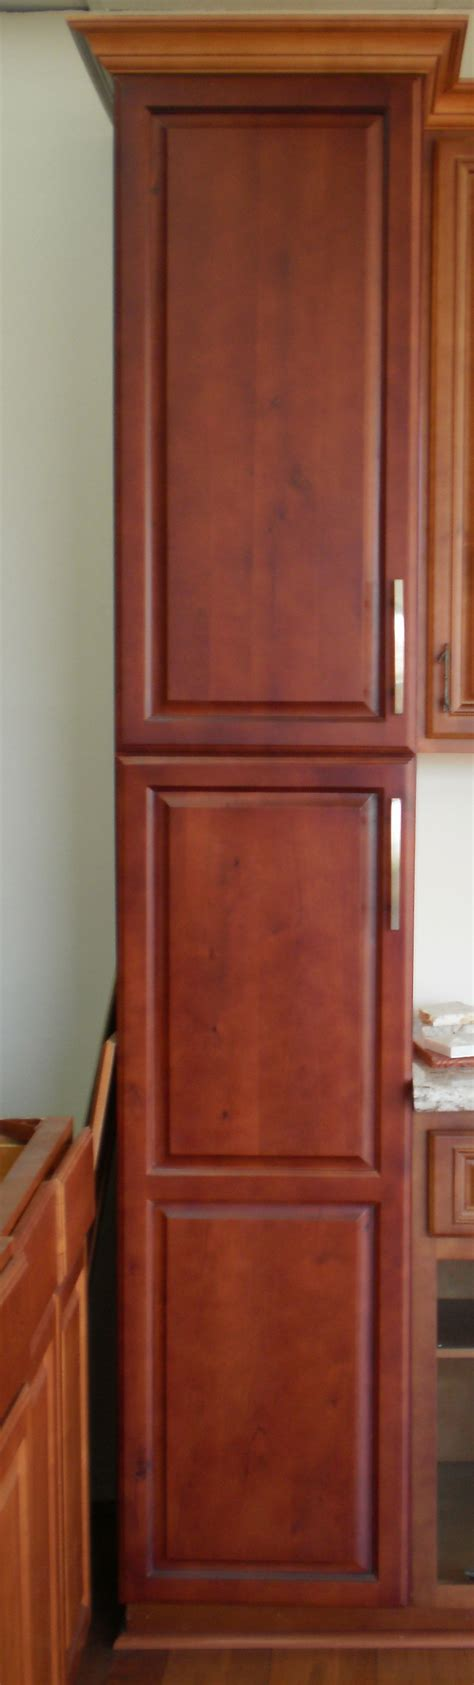 cherry maple pantry myt kitchen cabinet design